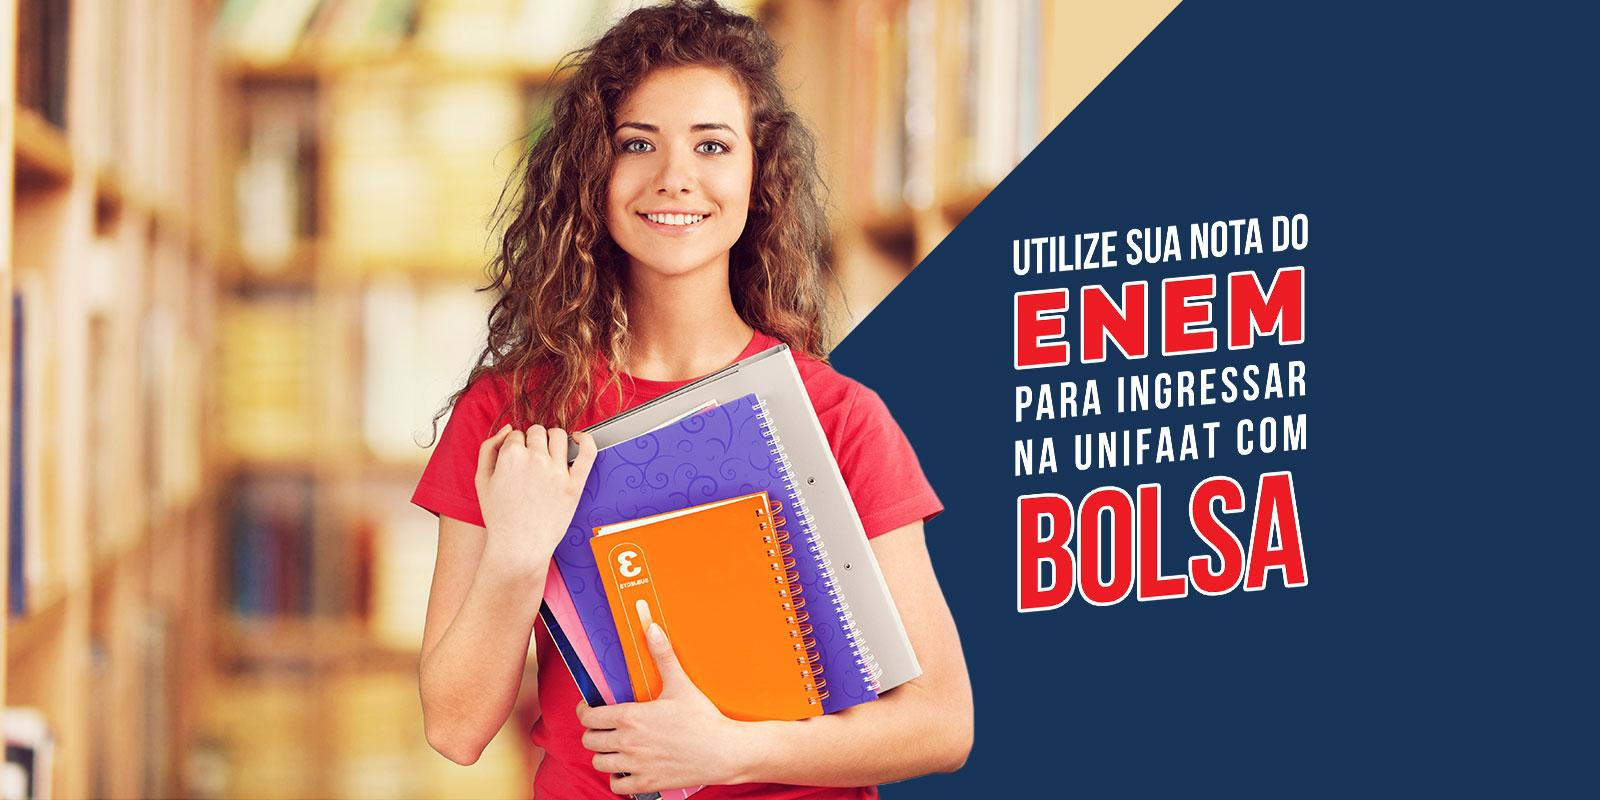 Use sua nota no ENEM para ingressar na UNIFAAT com bolsa